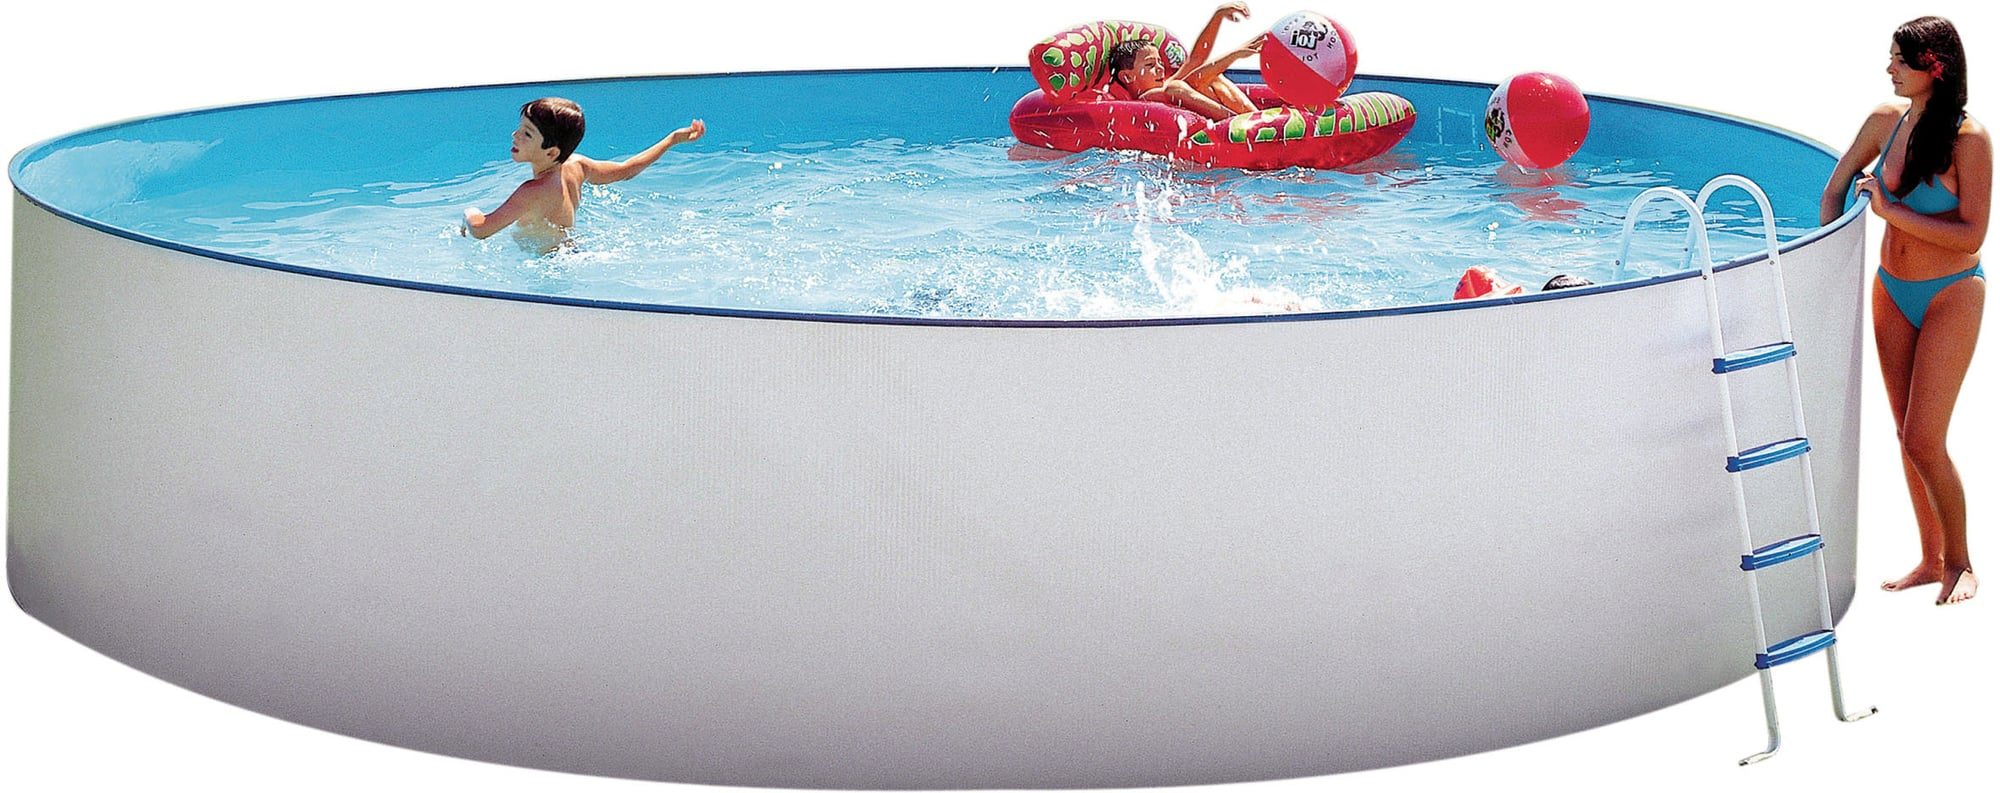 Pool Ohne Filteranlage Steinbach Nuovo Pool Rund Ø 350 X 120 Cm Pools Shop